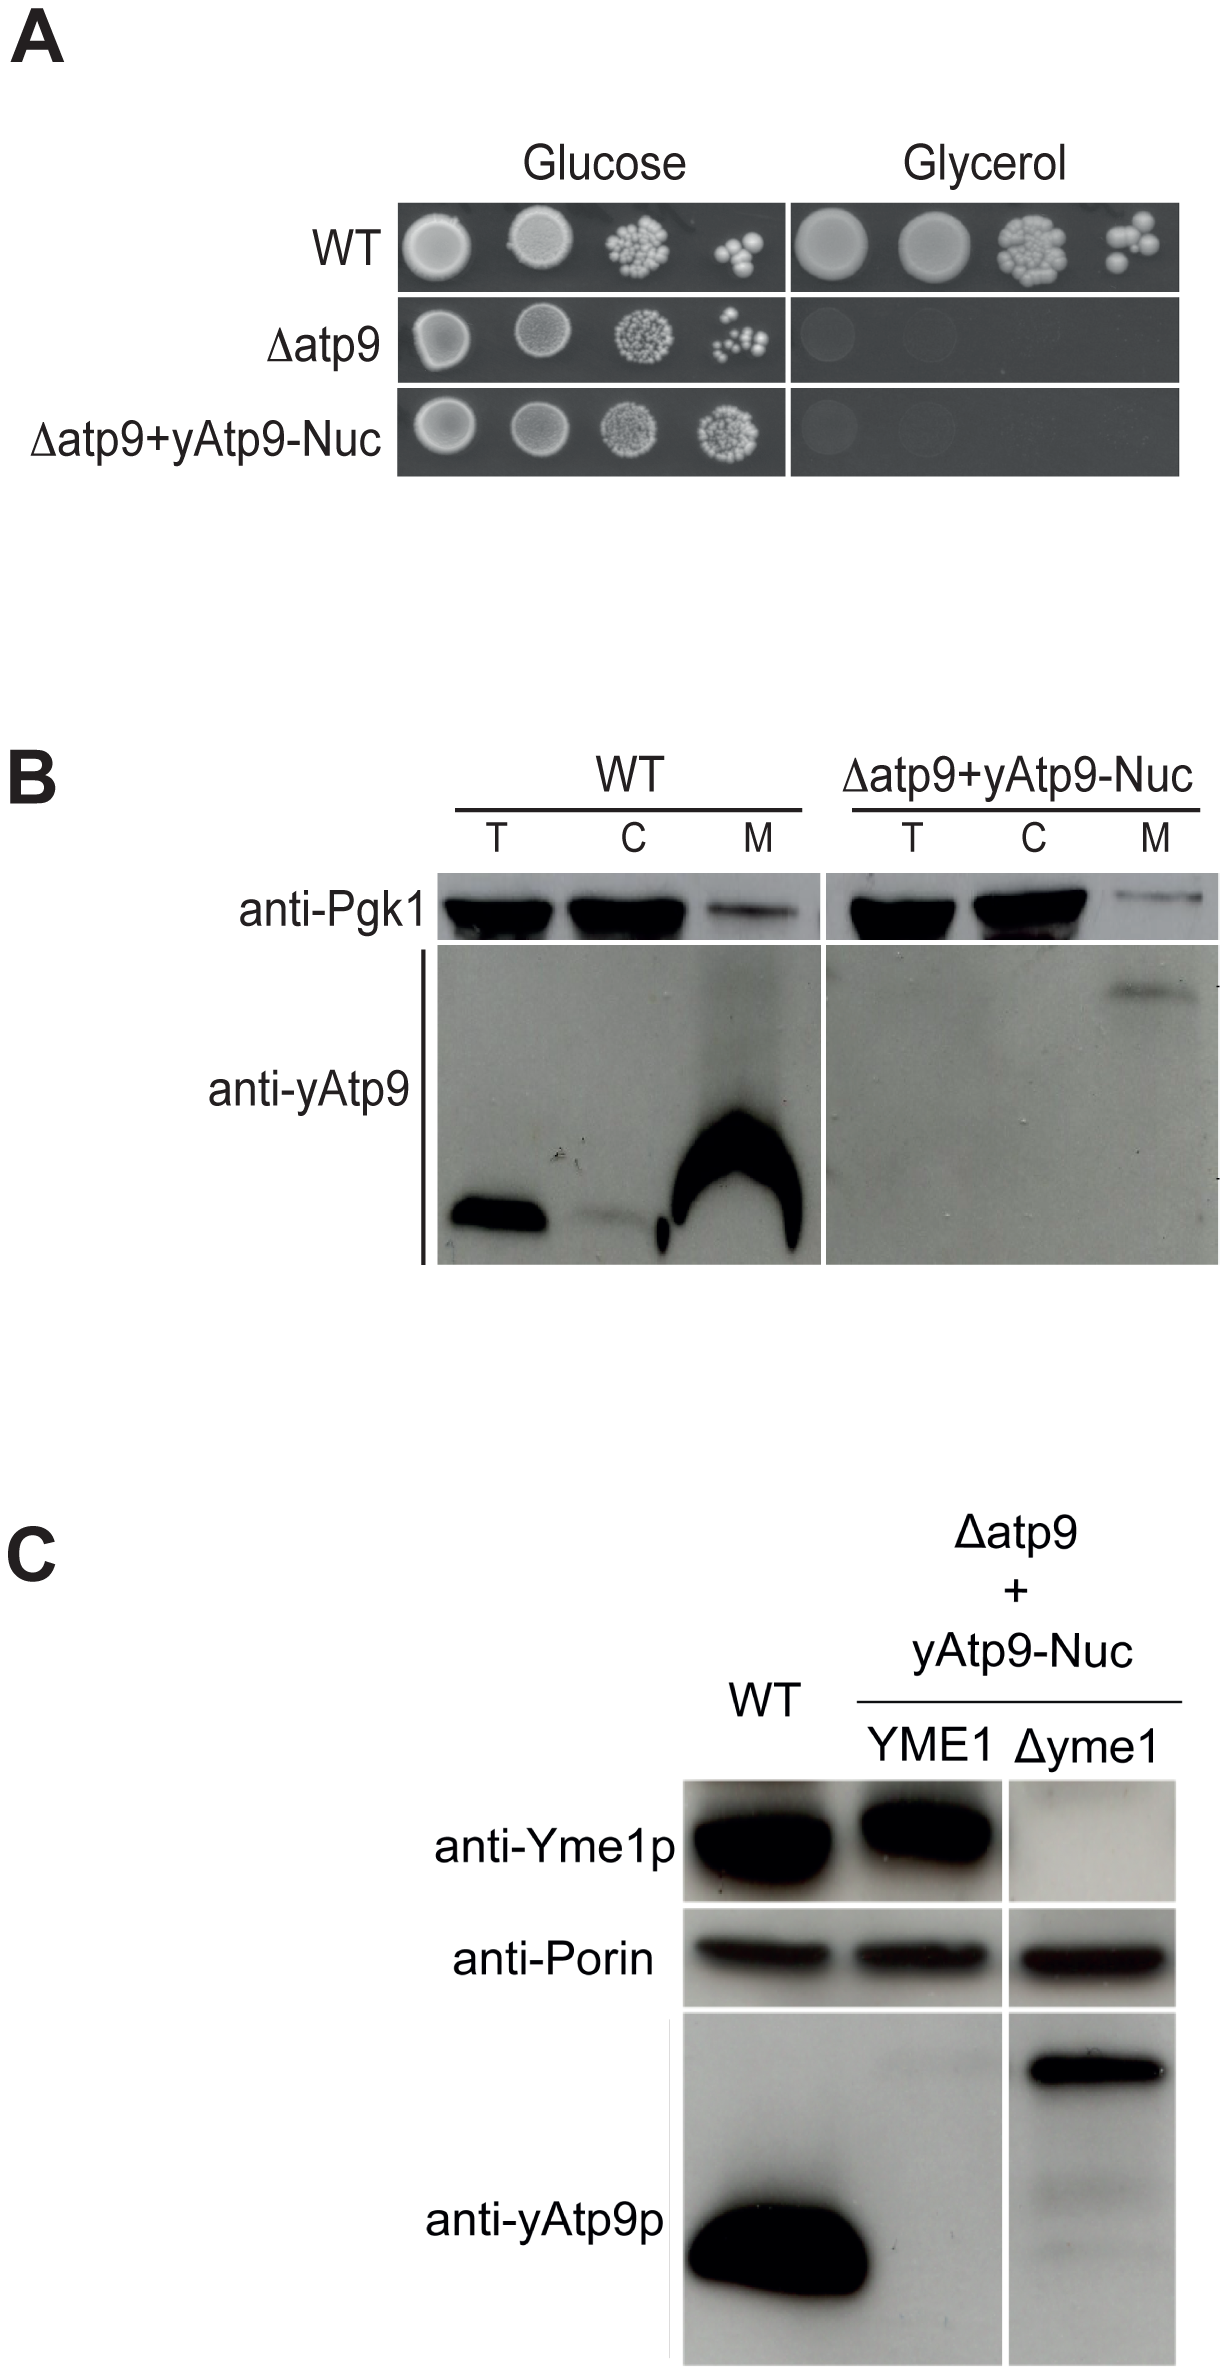 A nuclear version of the yeast mitochondrial <i>ATP9</i> gene fails to complement the <i>Δatp9</i> yeast.